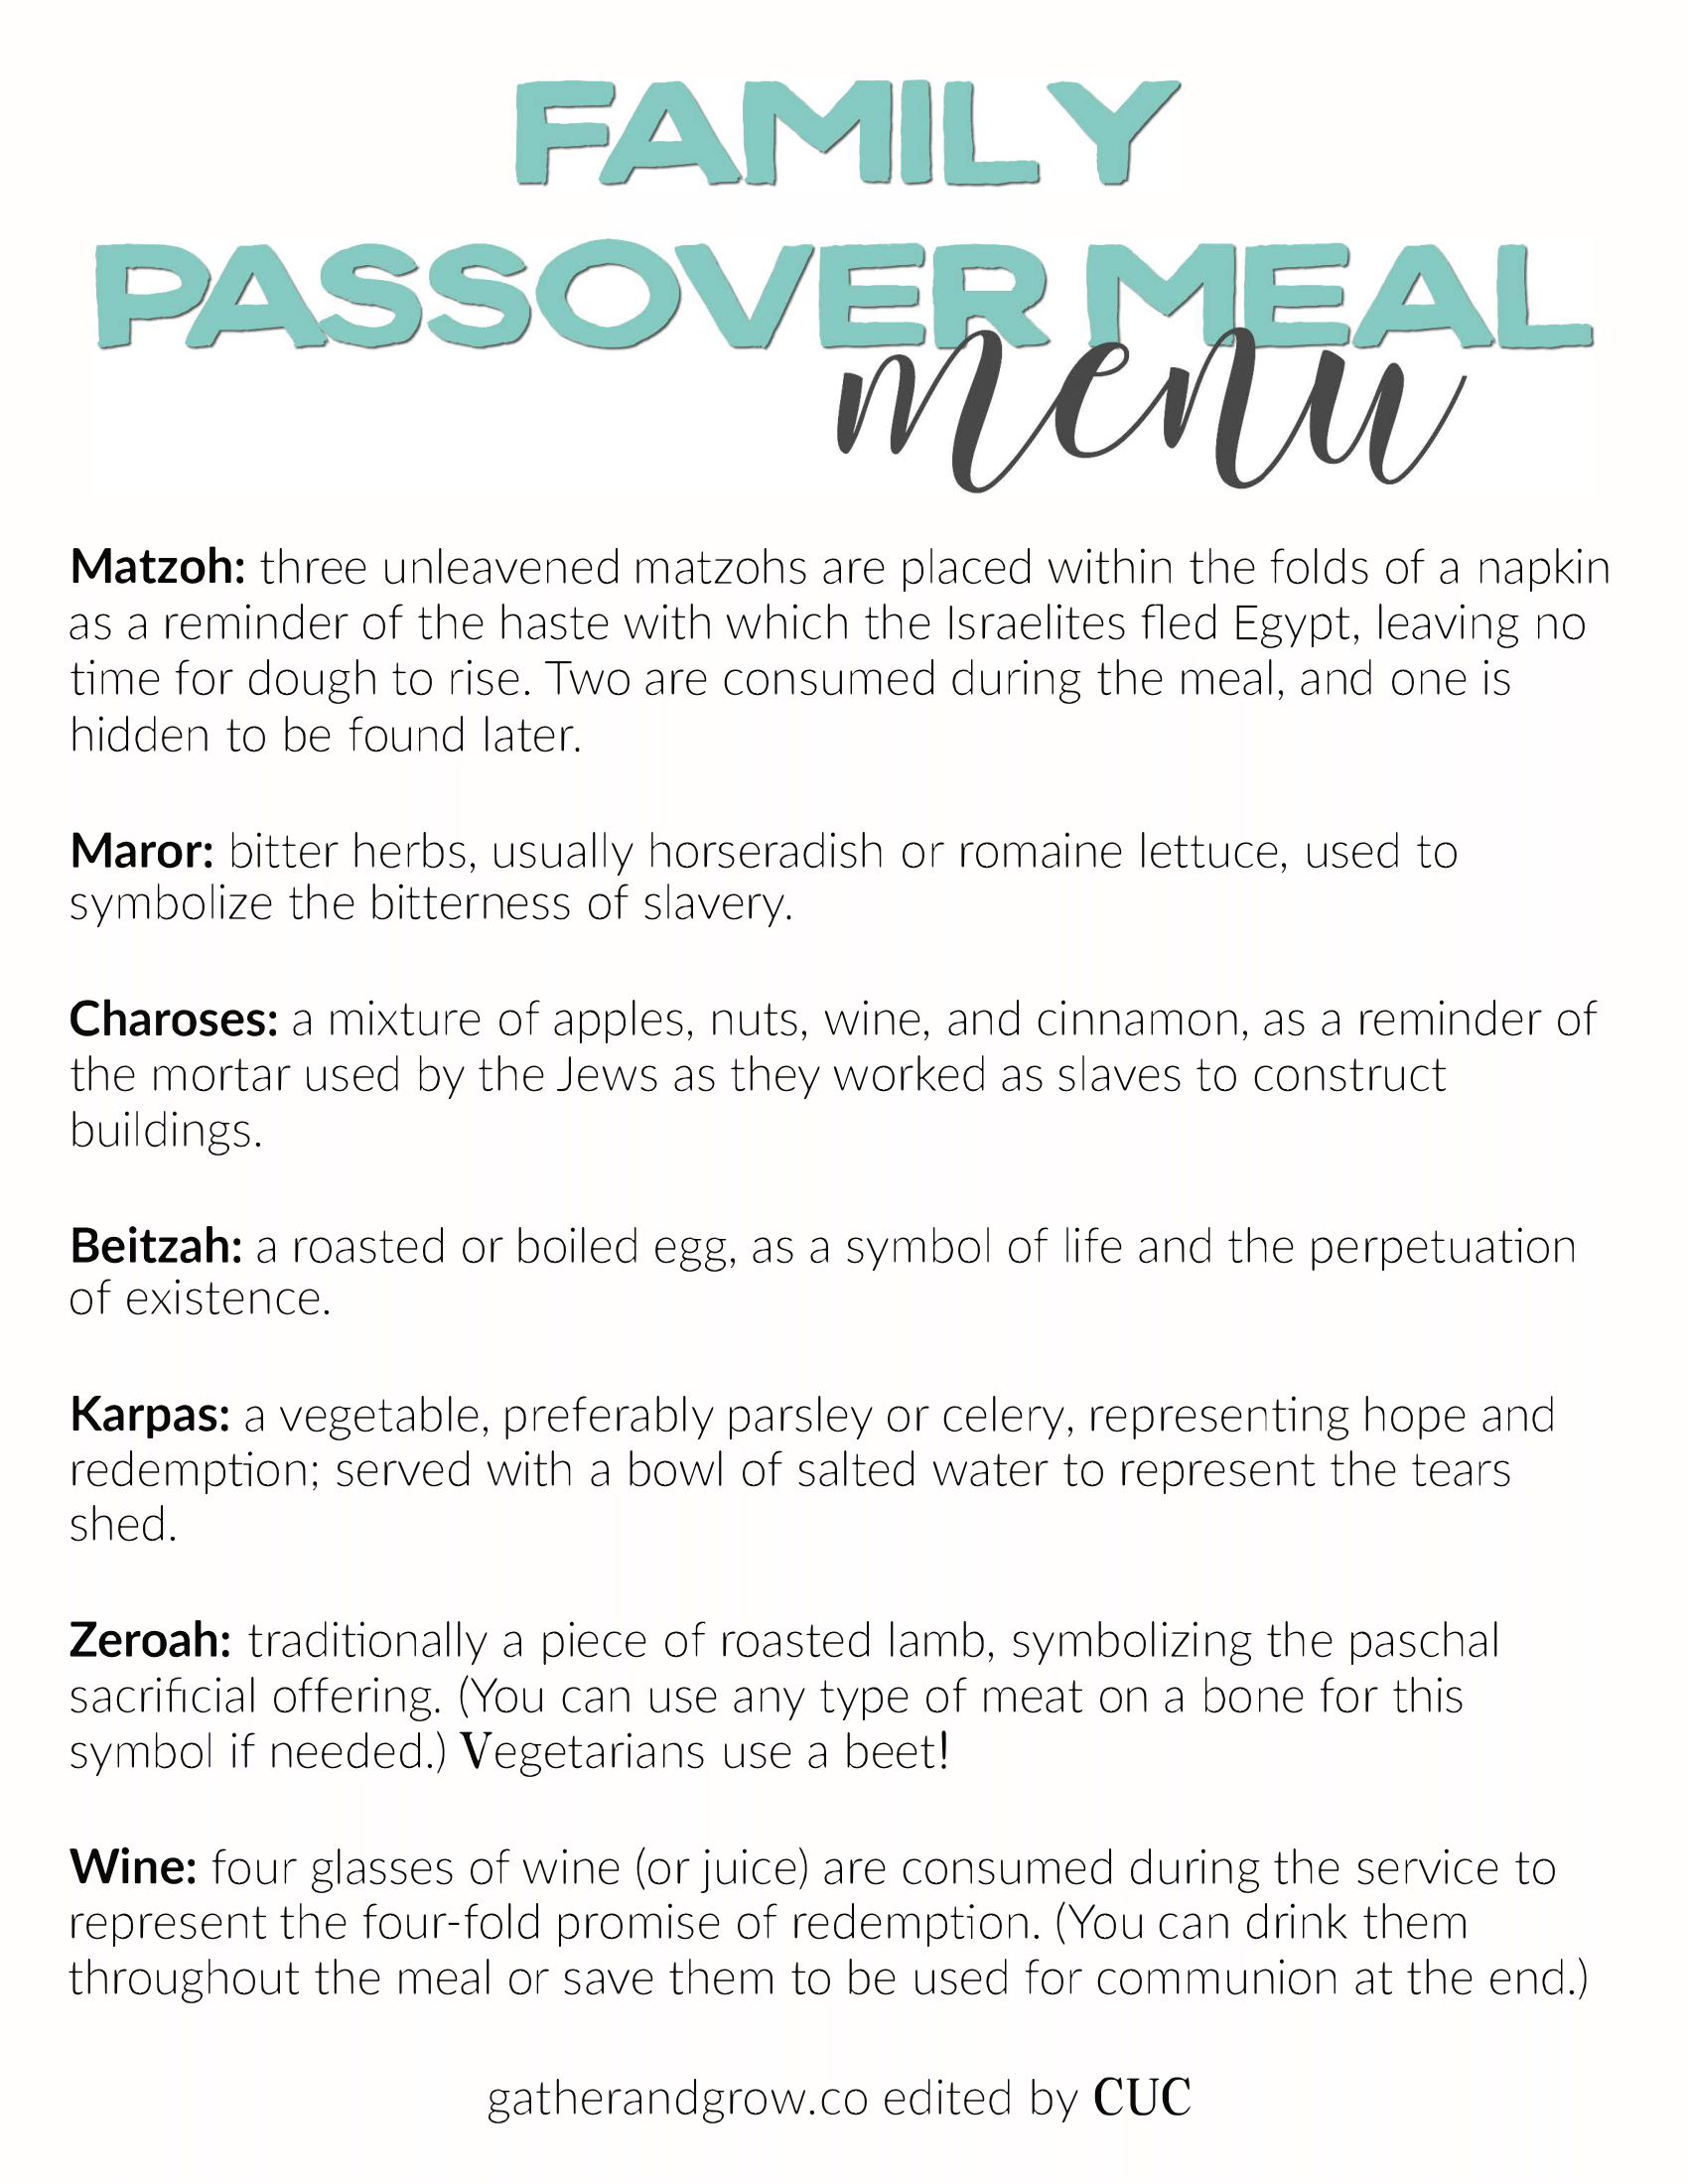 Make Your Own Seder Meal!